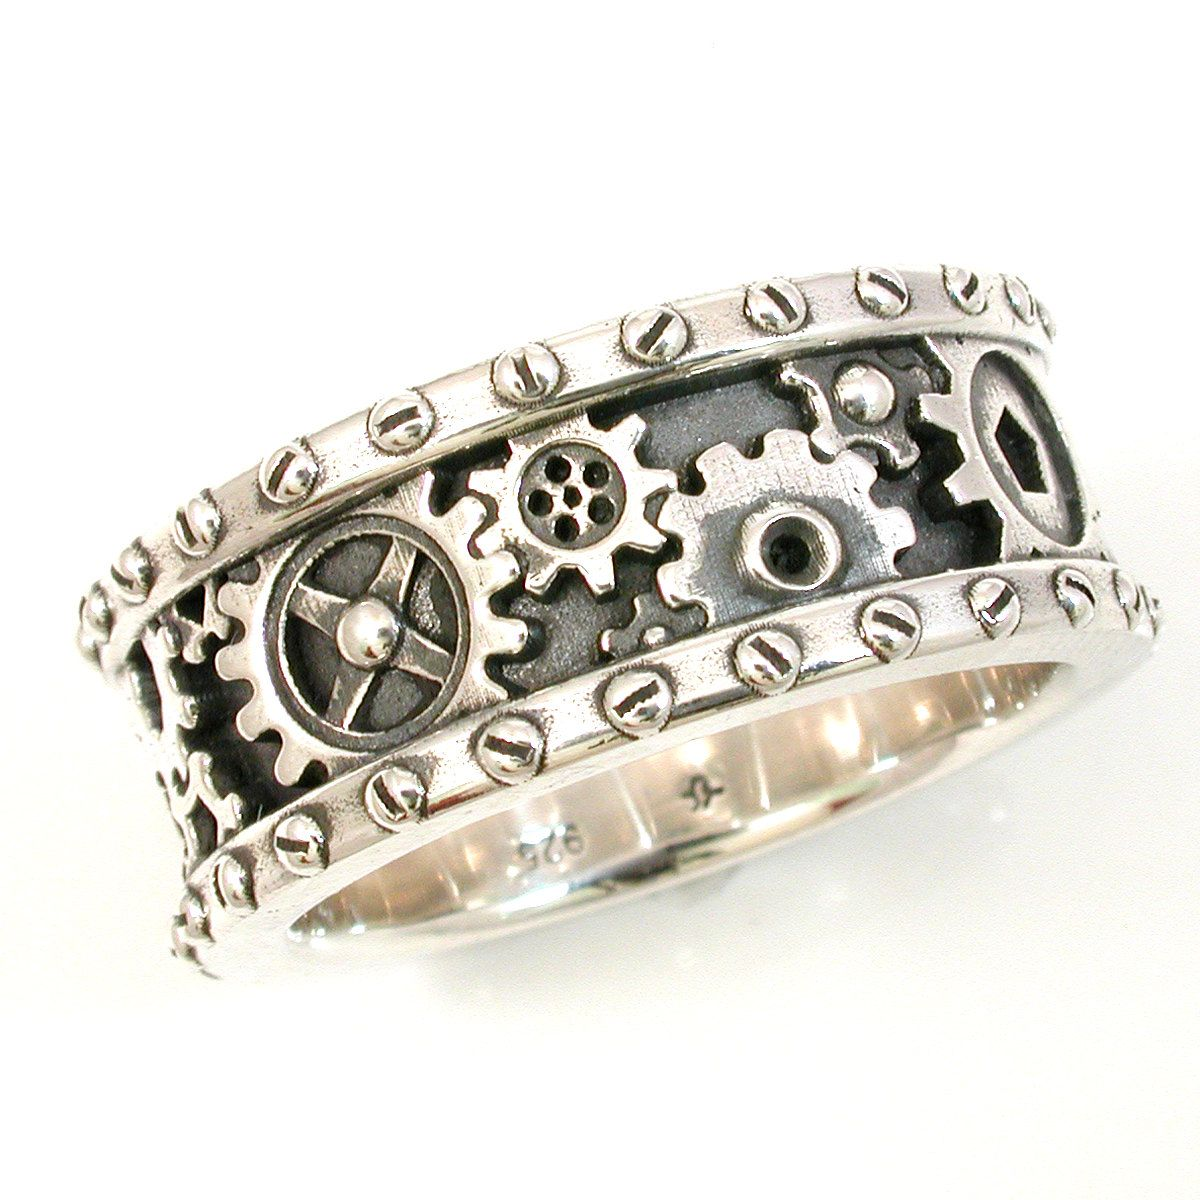 Steampunk Mens Silver Ring Gears And Rivets Steam Punk Handmade Gear